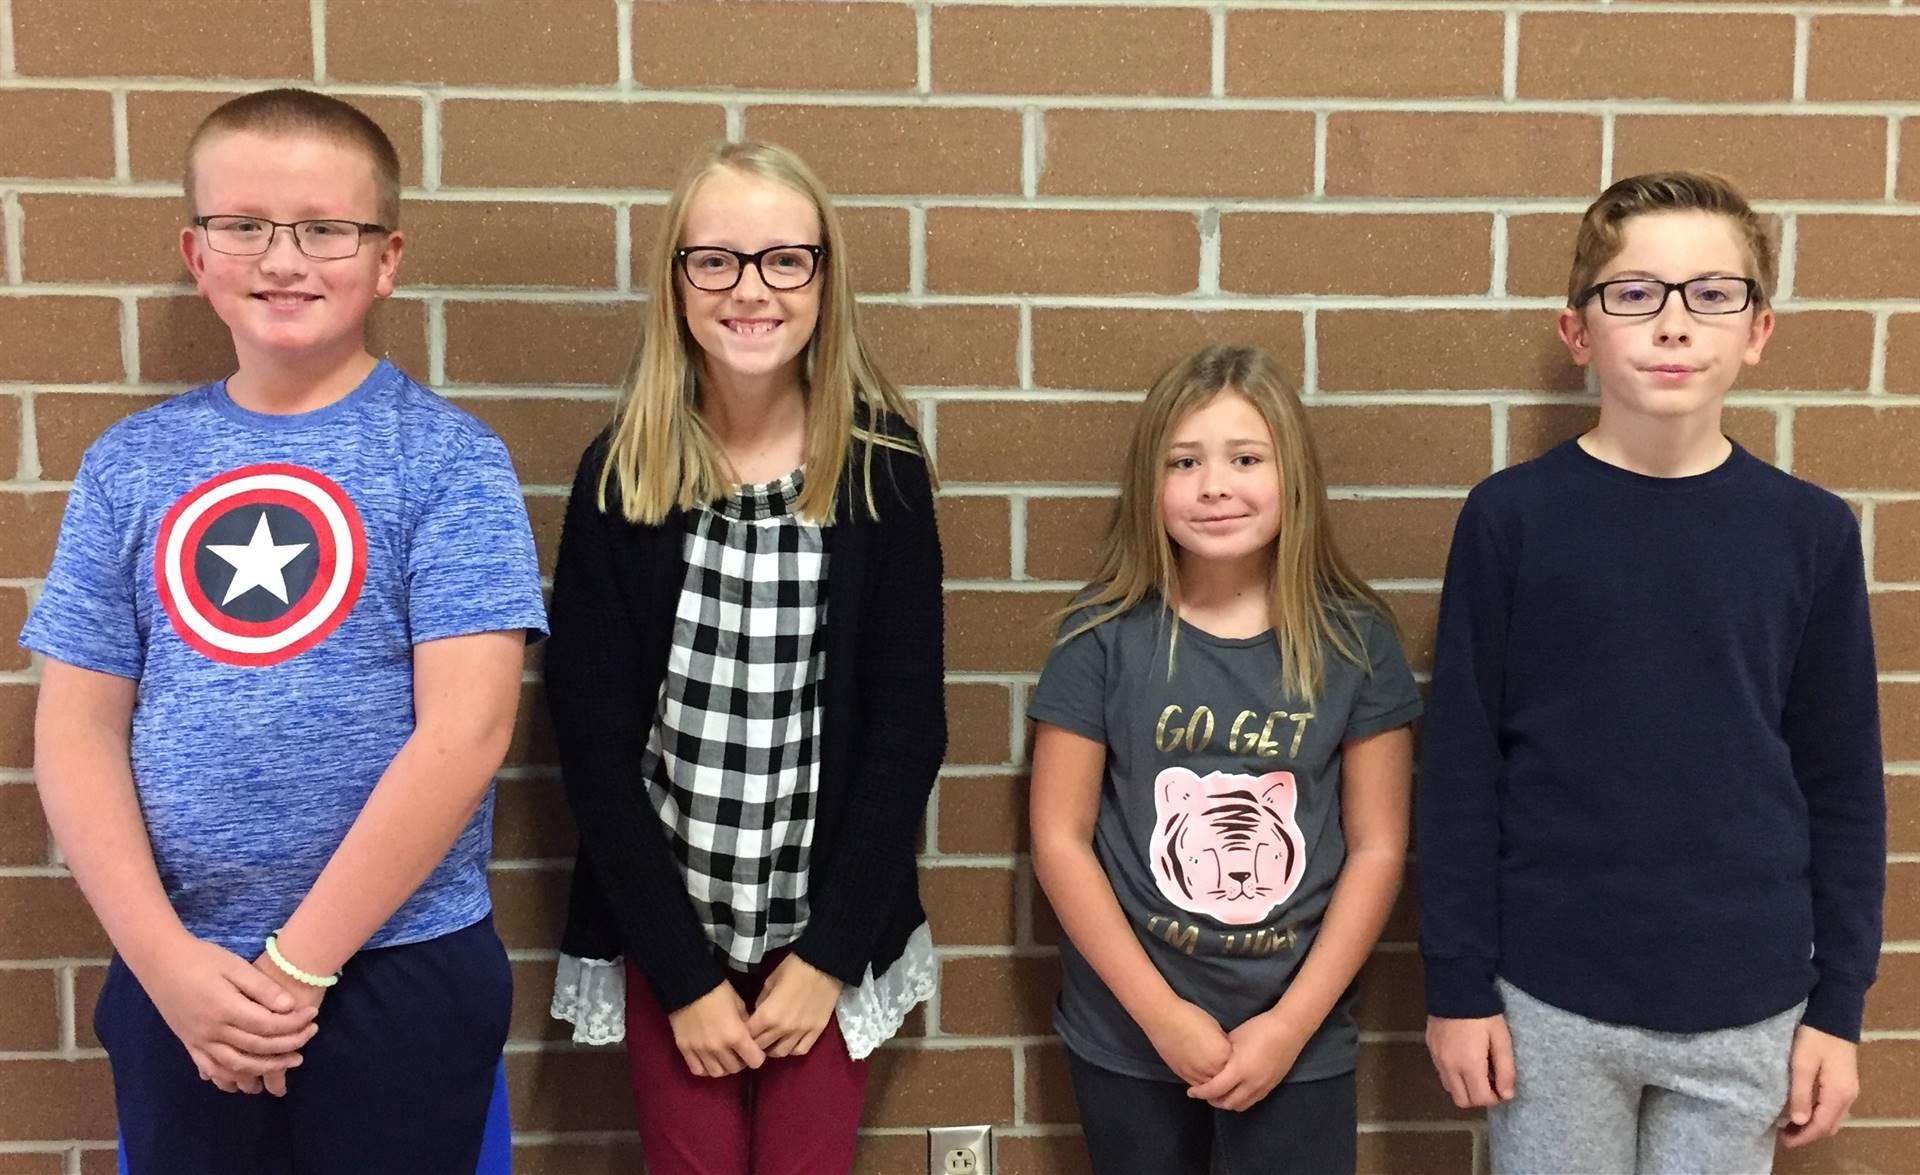 October's Students of the Month for Trustworthiness